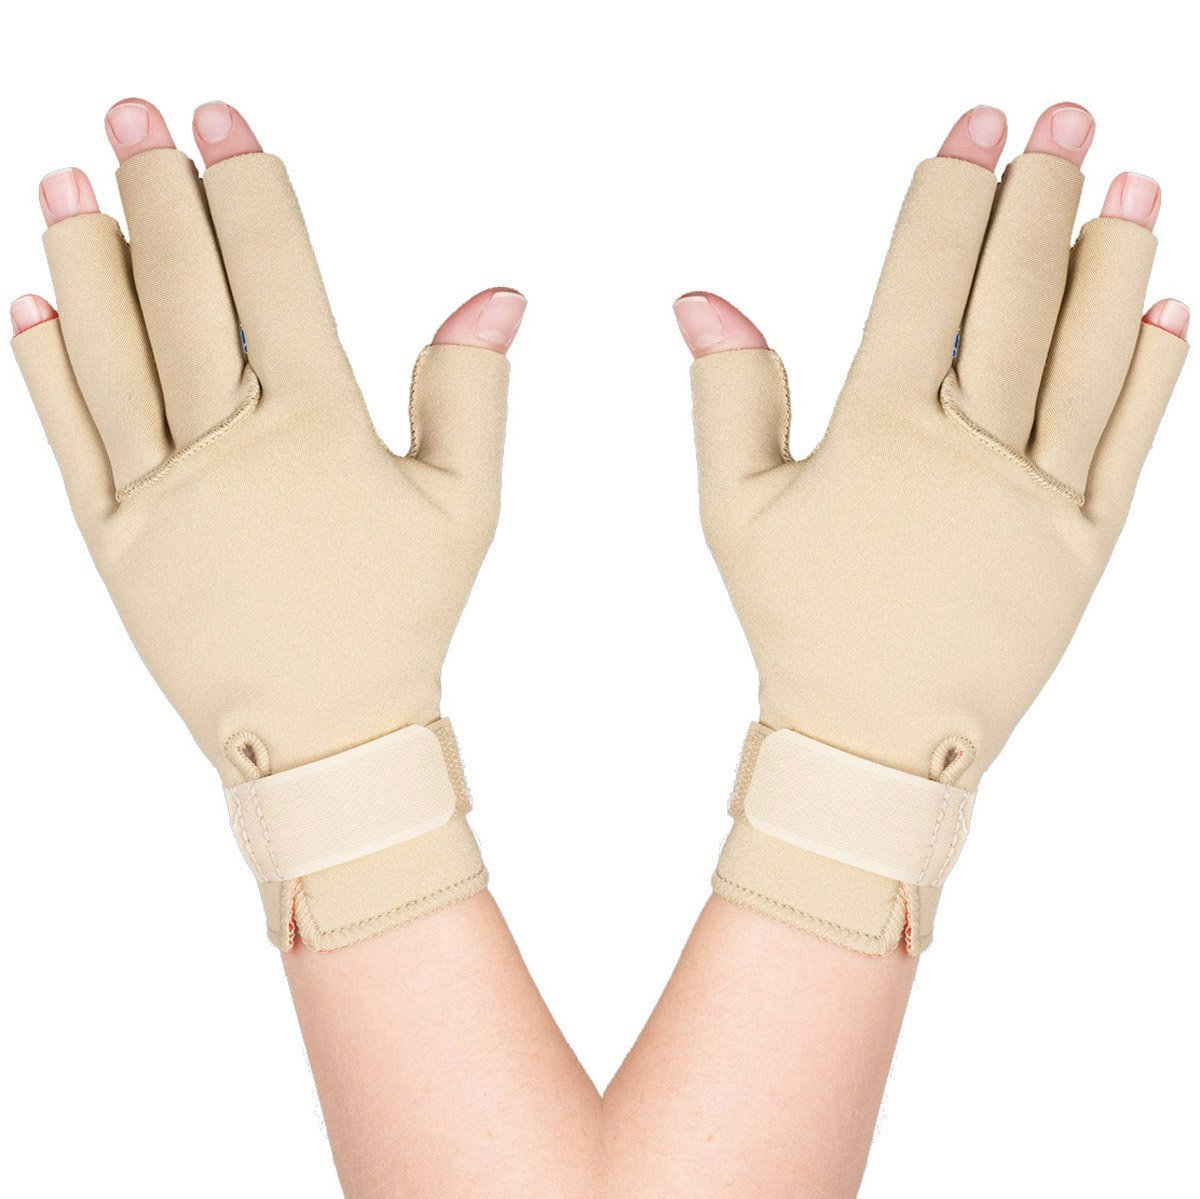 Thermoskin Arthritis Gloves, Beige, Medium